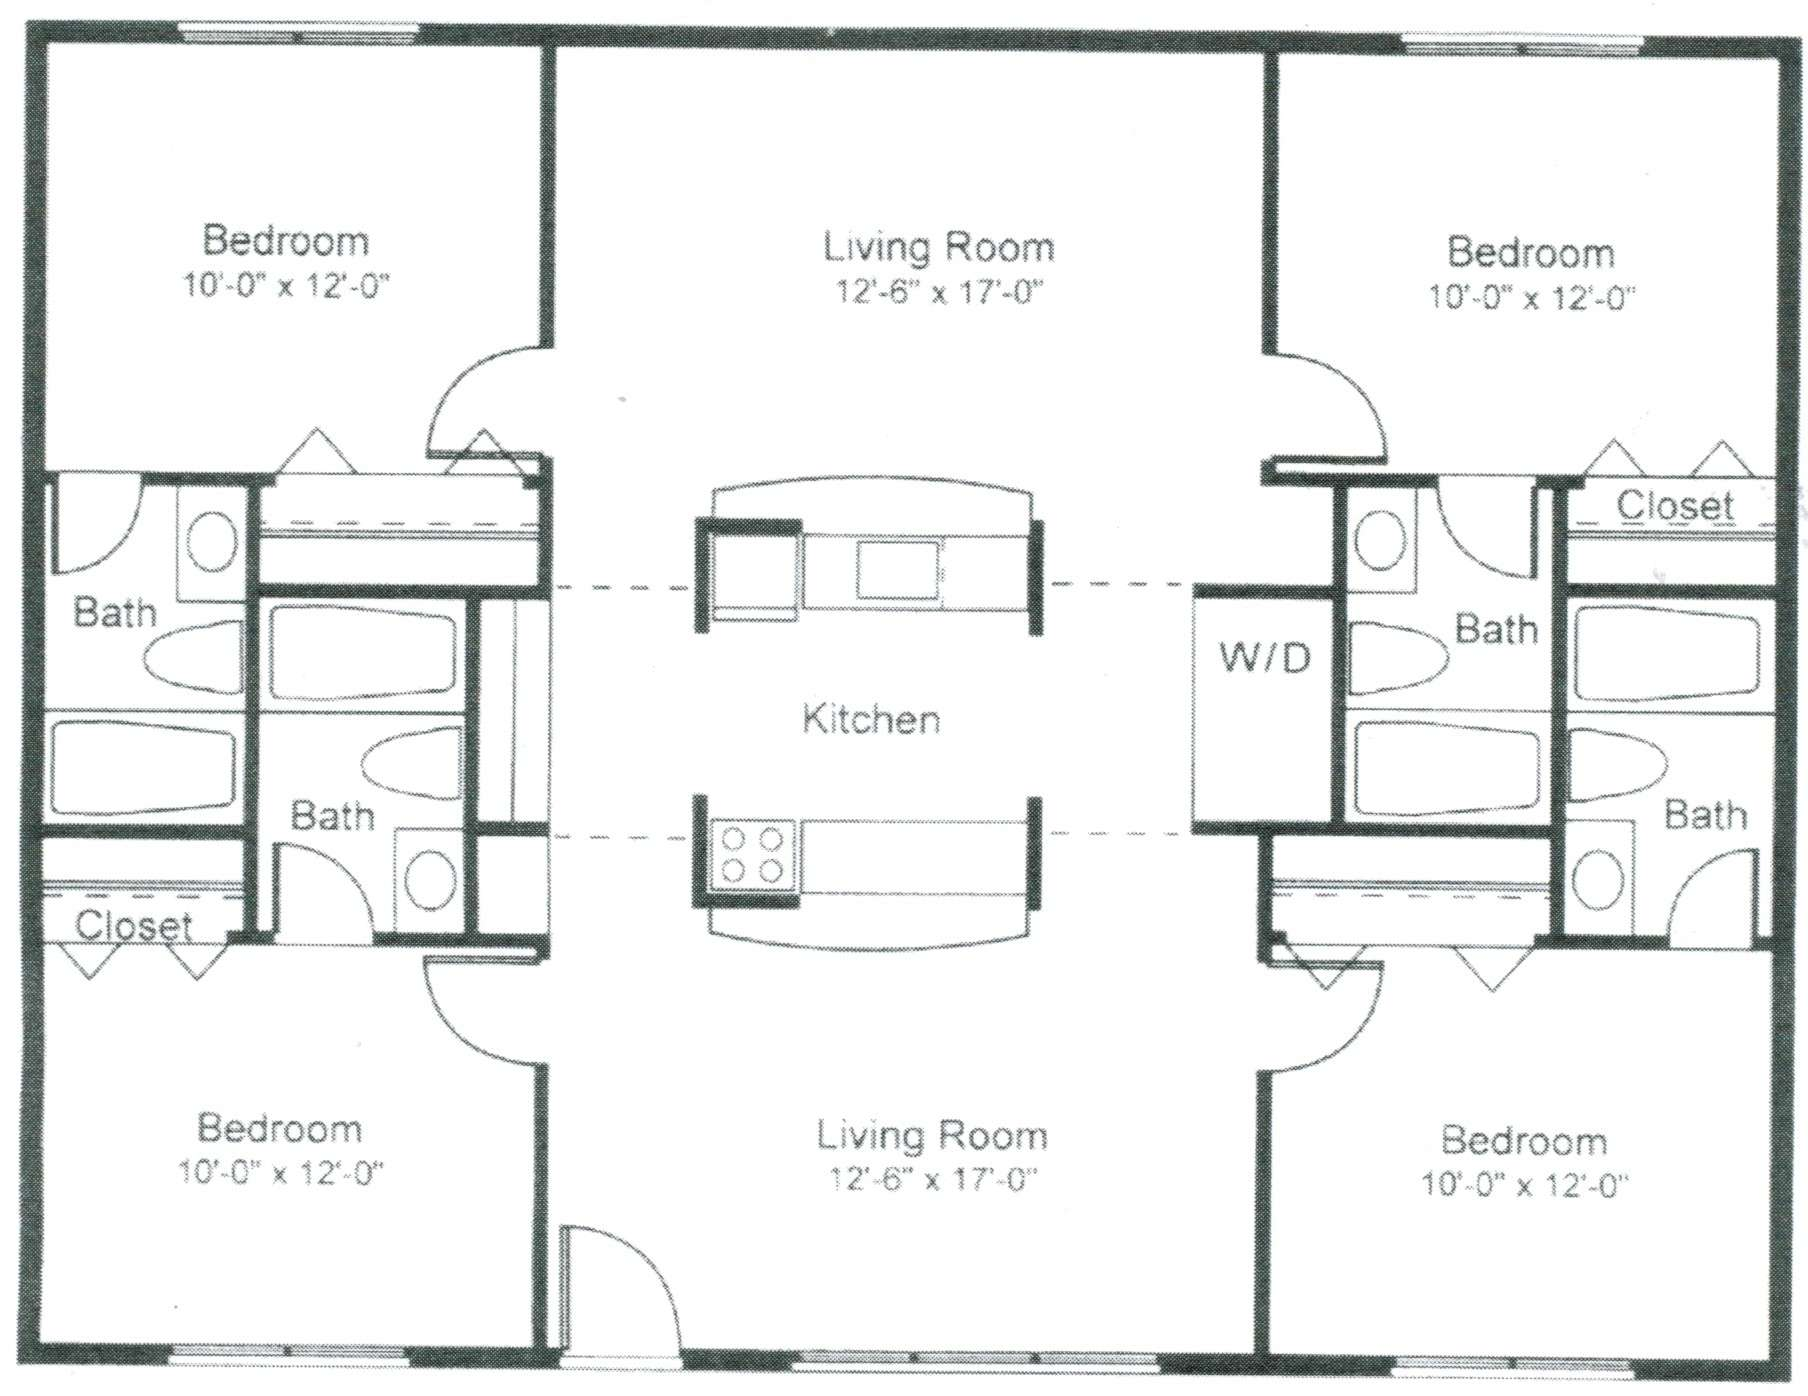 Floorplans Pricing Met